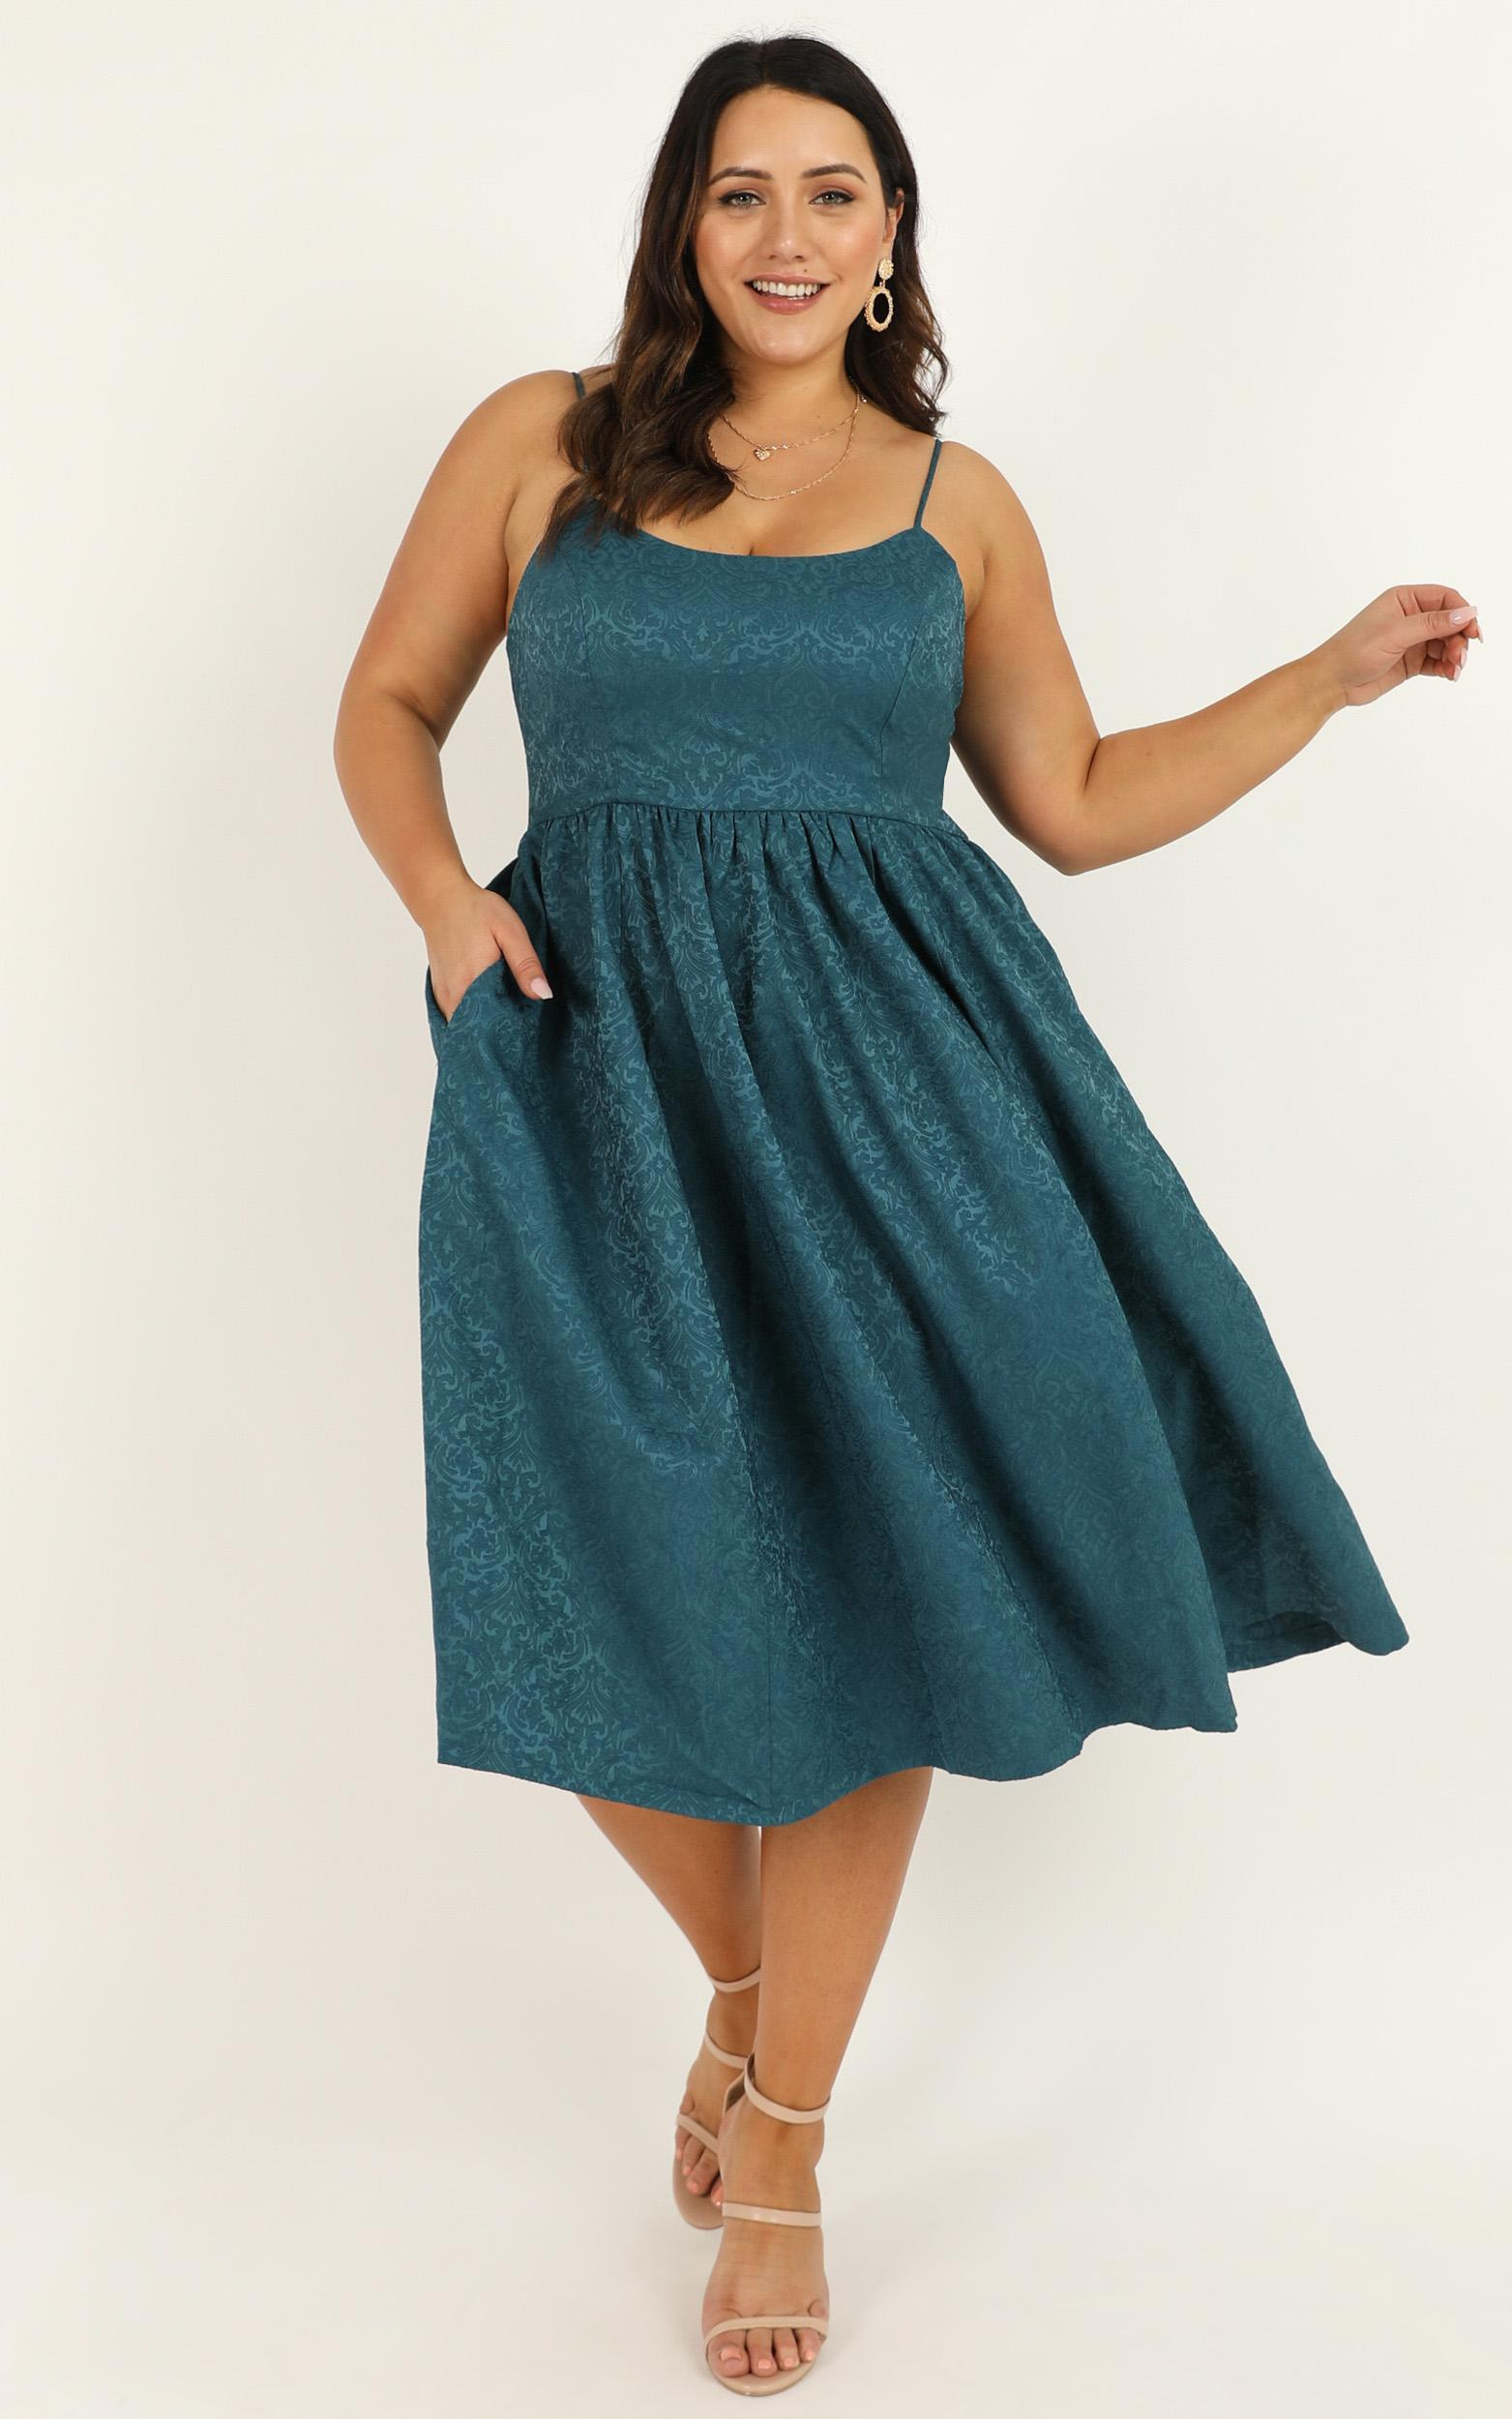 Entire Love Dress in emerald jacquard - 20 (XXXXL), Green, hi-res image number null